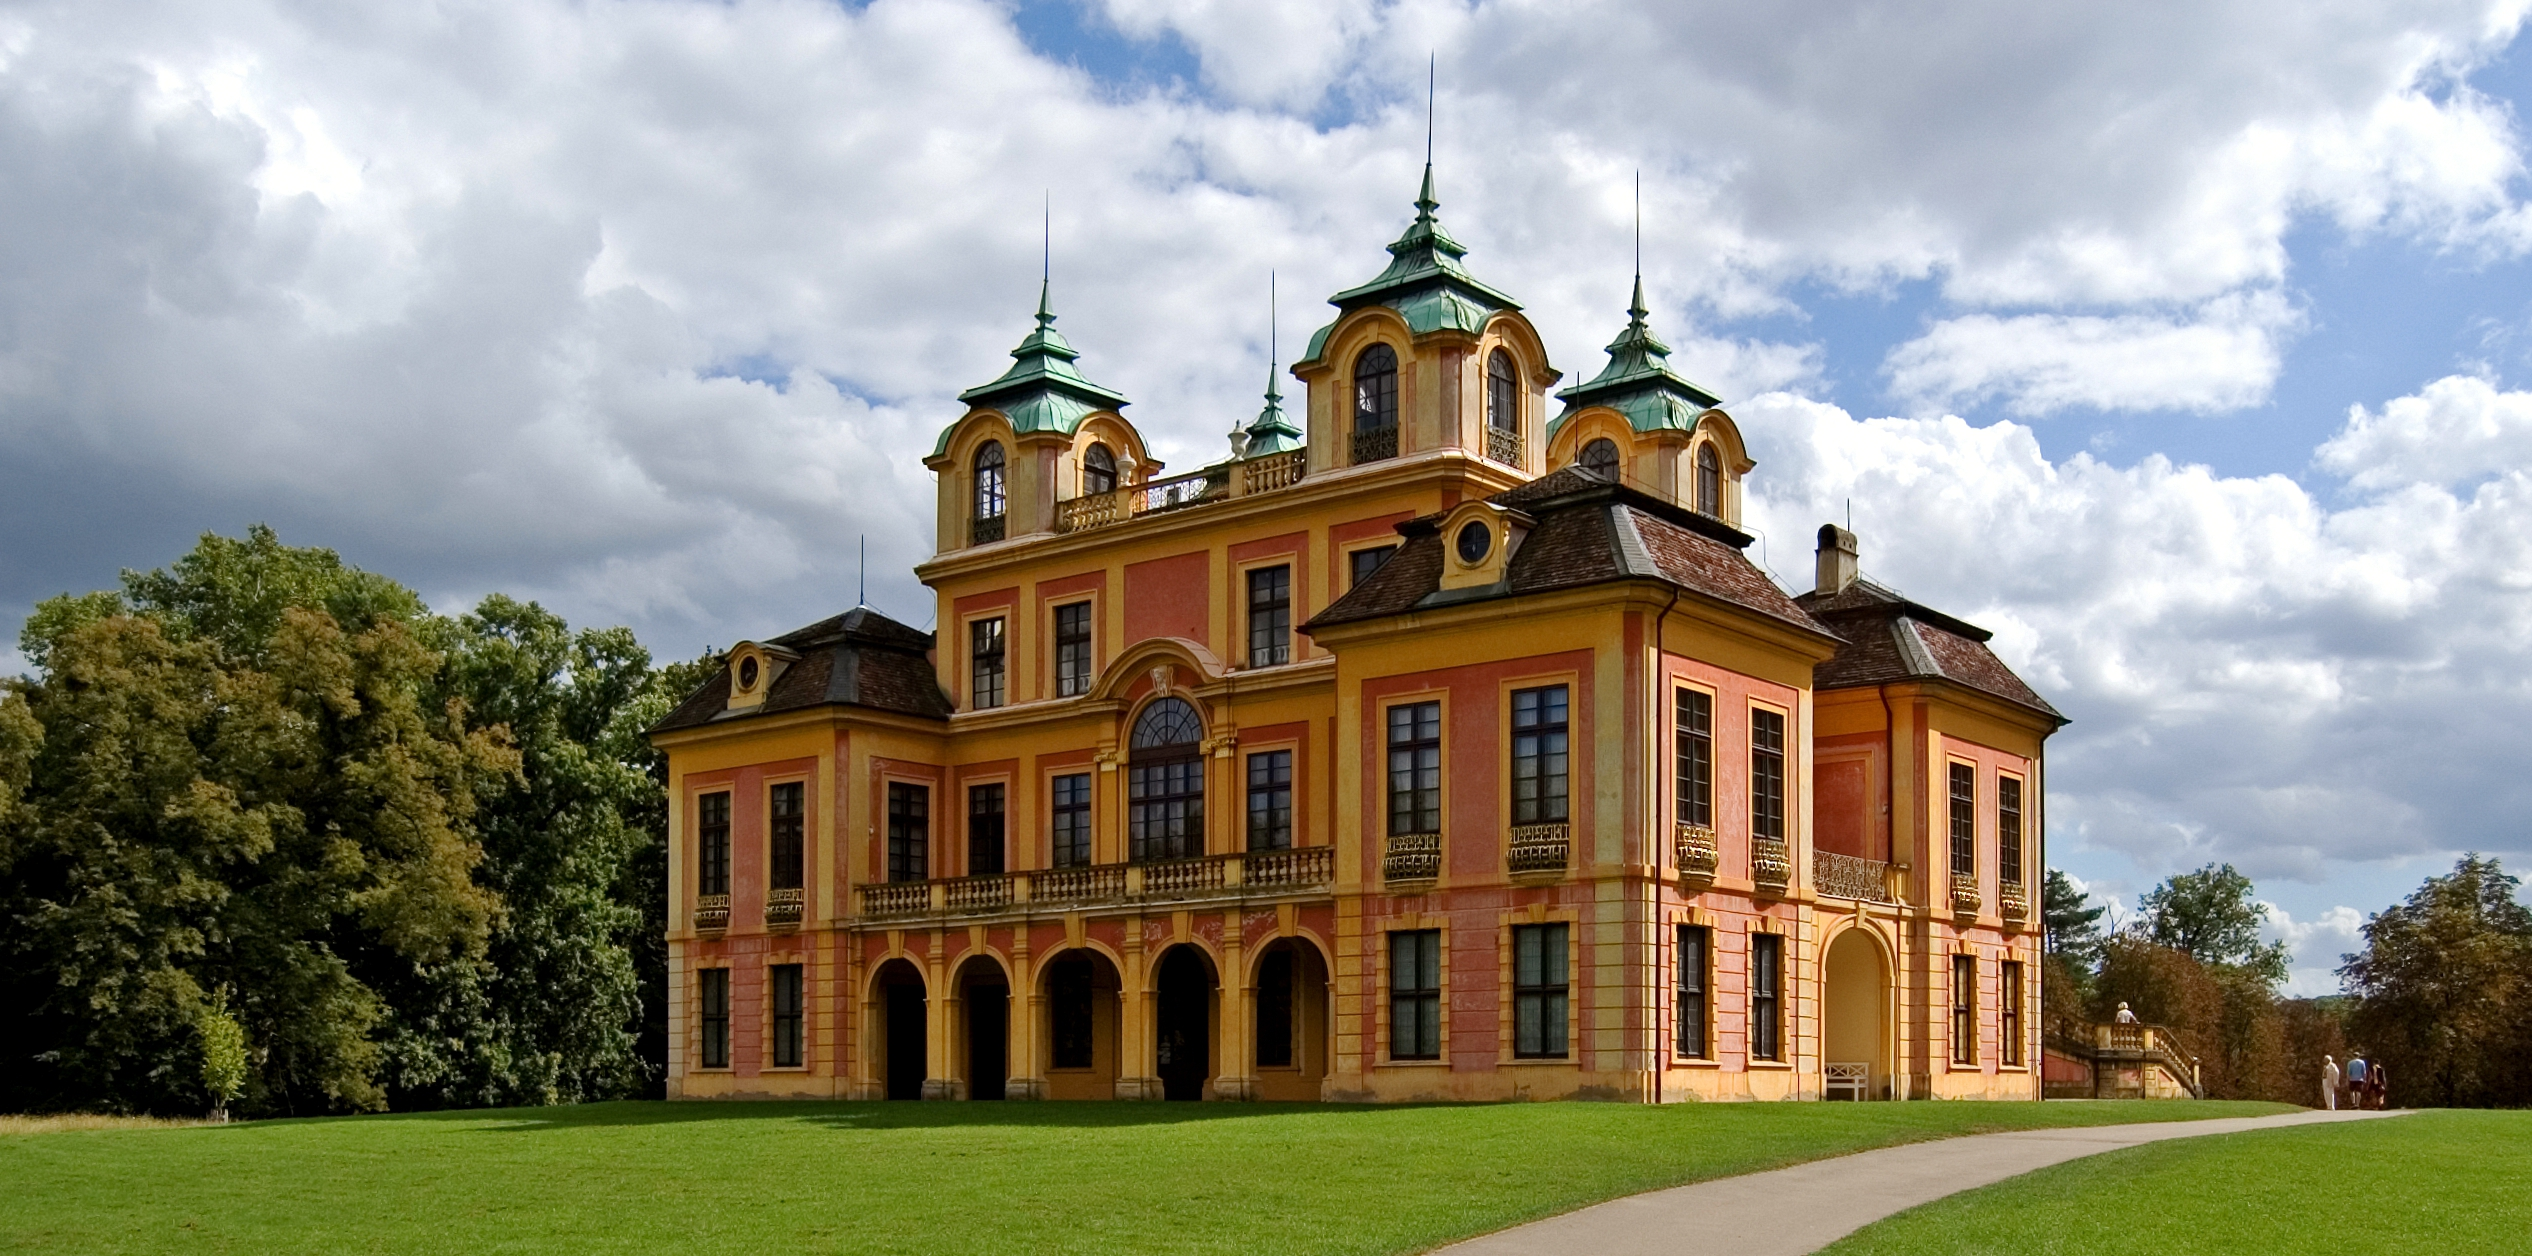 file schloss favorite park wikimedia commons. Black Bedroom Furniture Sets. Home Design Ideas